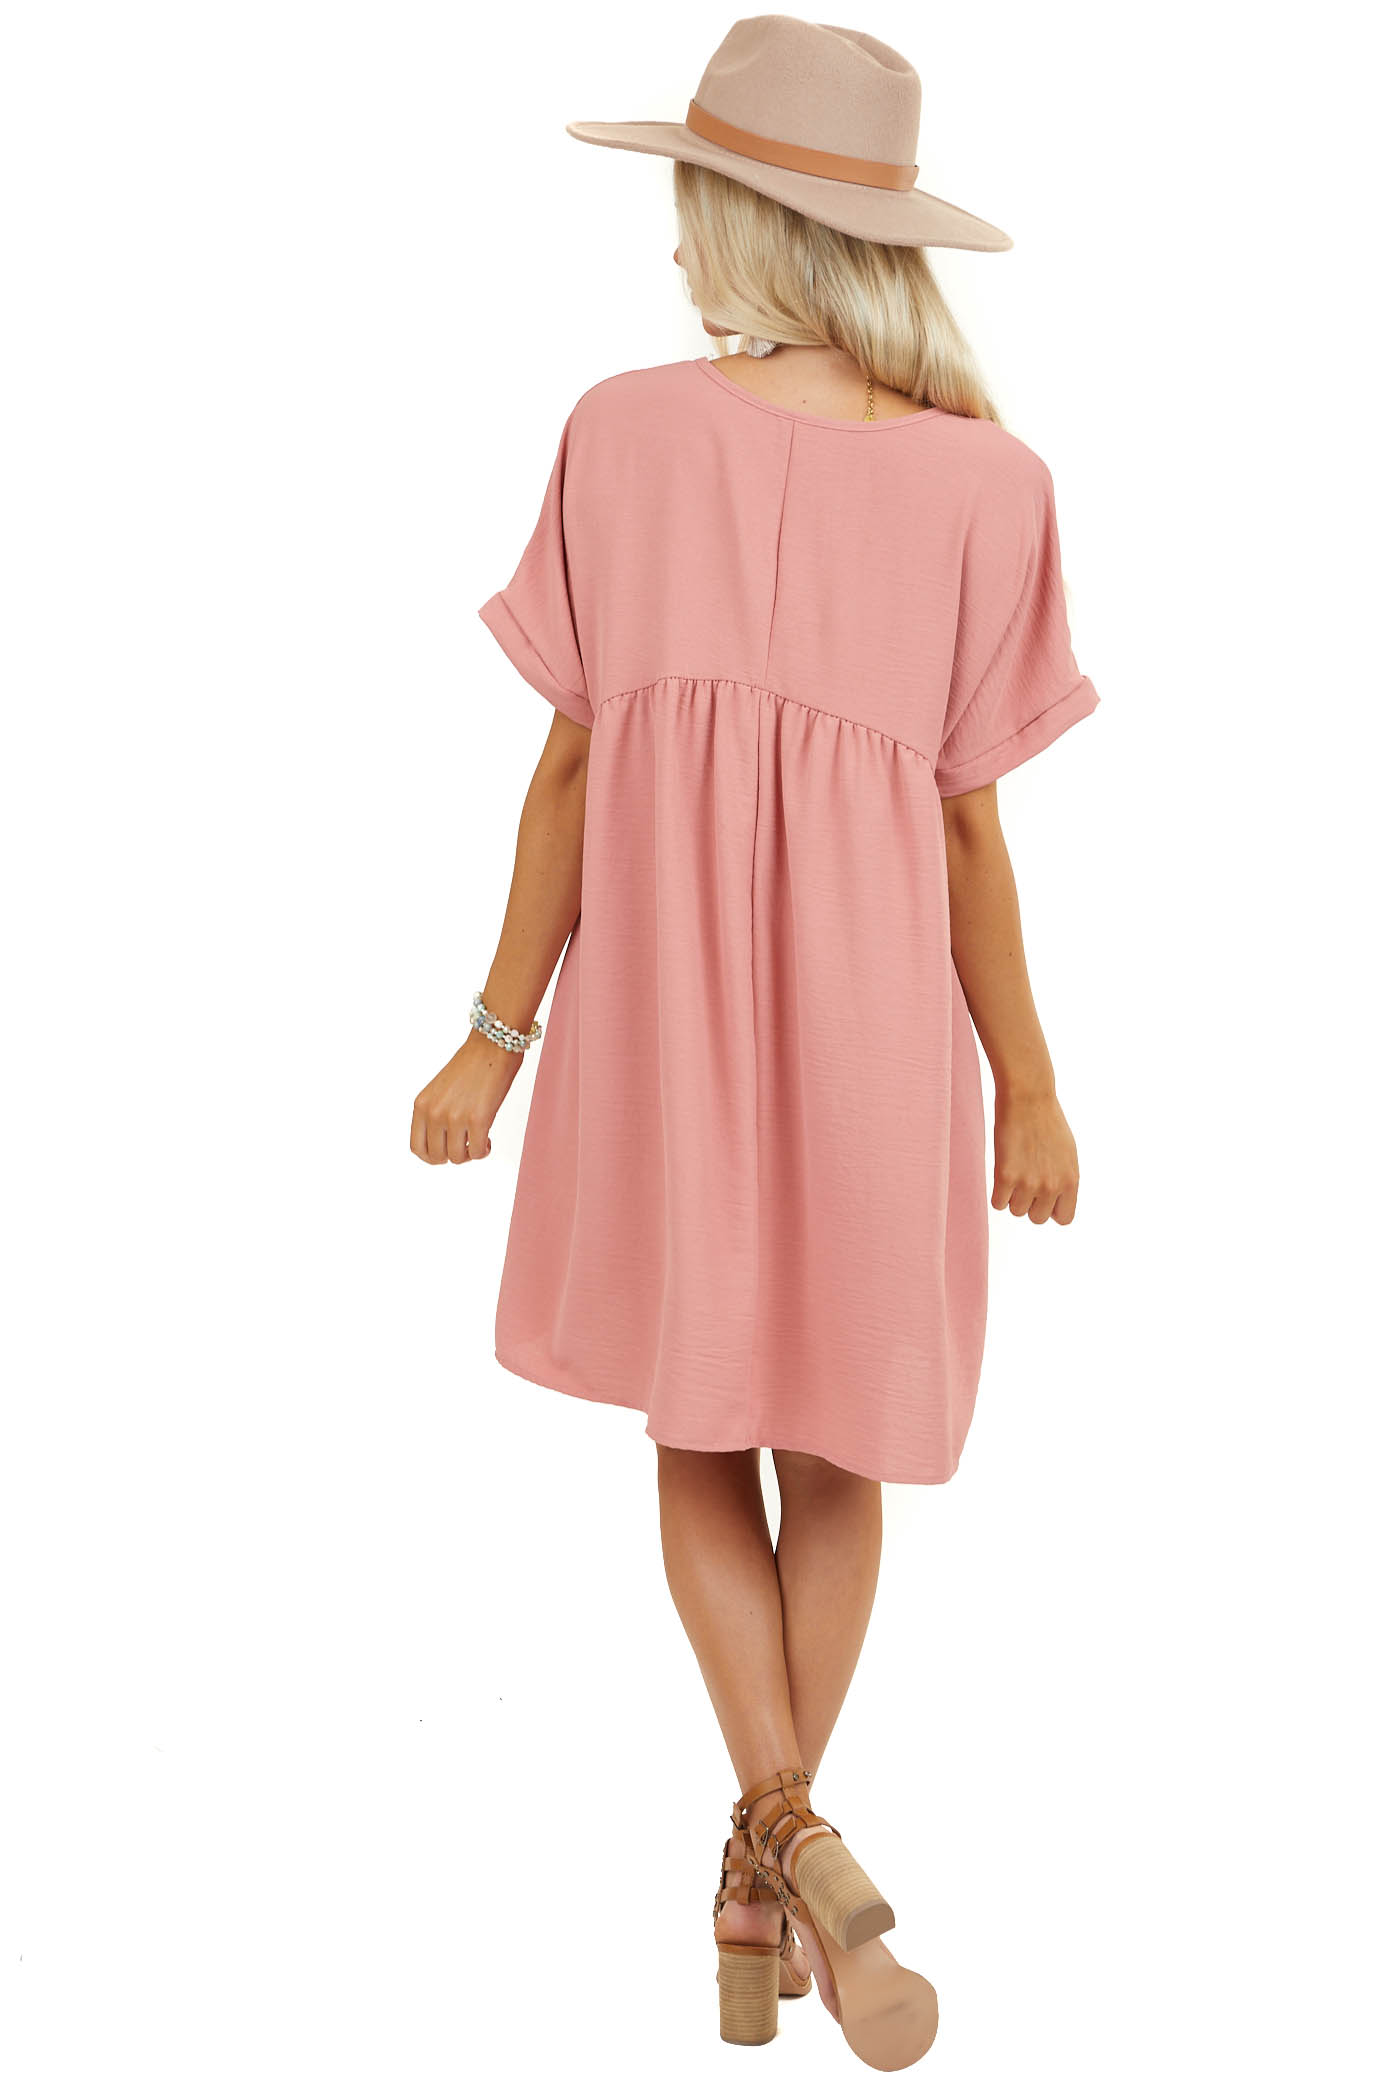 Blush Babydoll Short Cuffed Sleeve Dress with Rounded V Neck